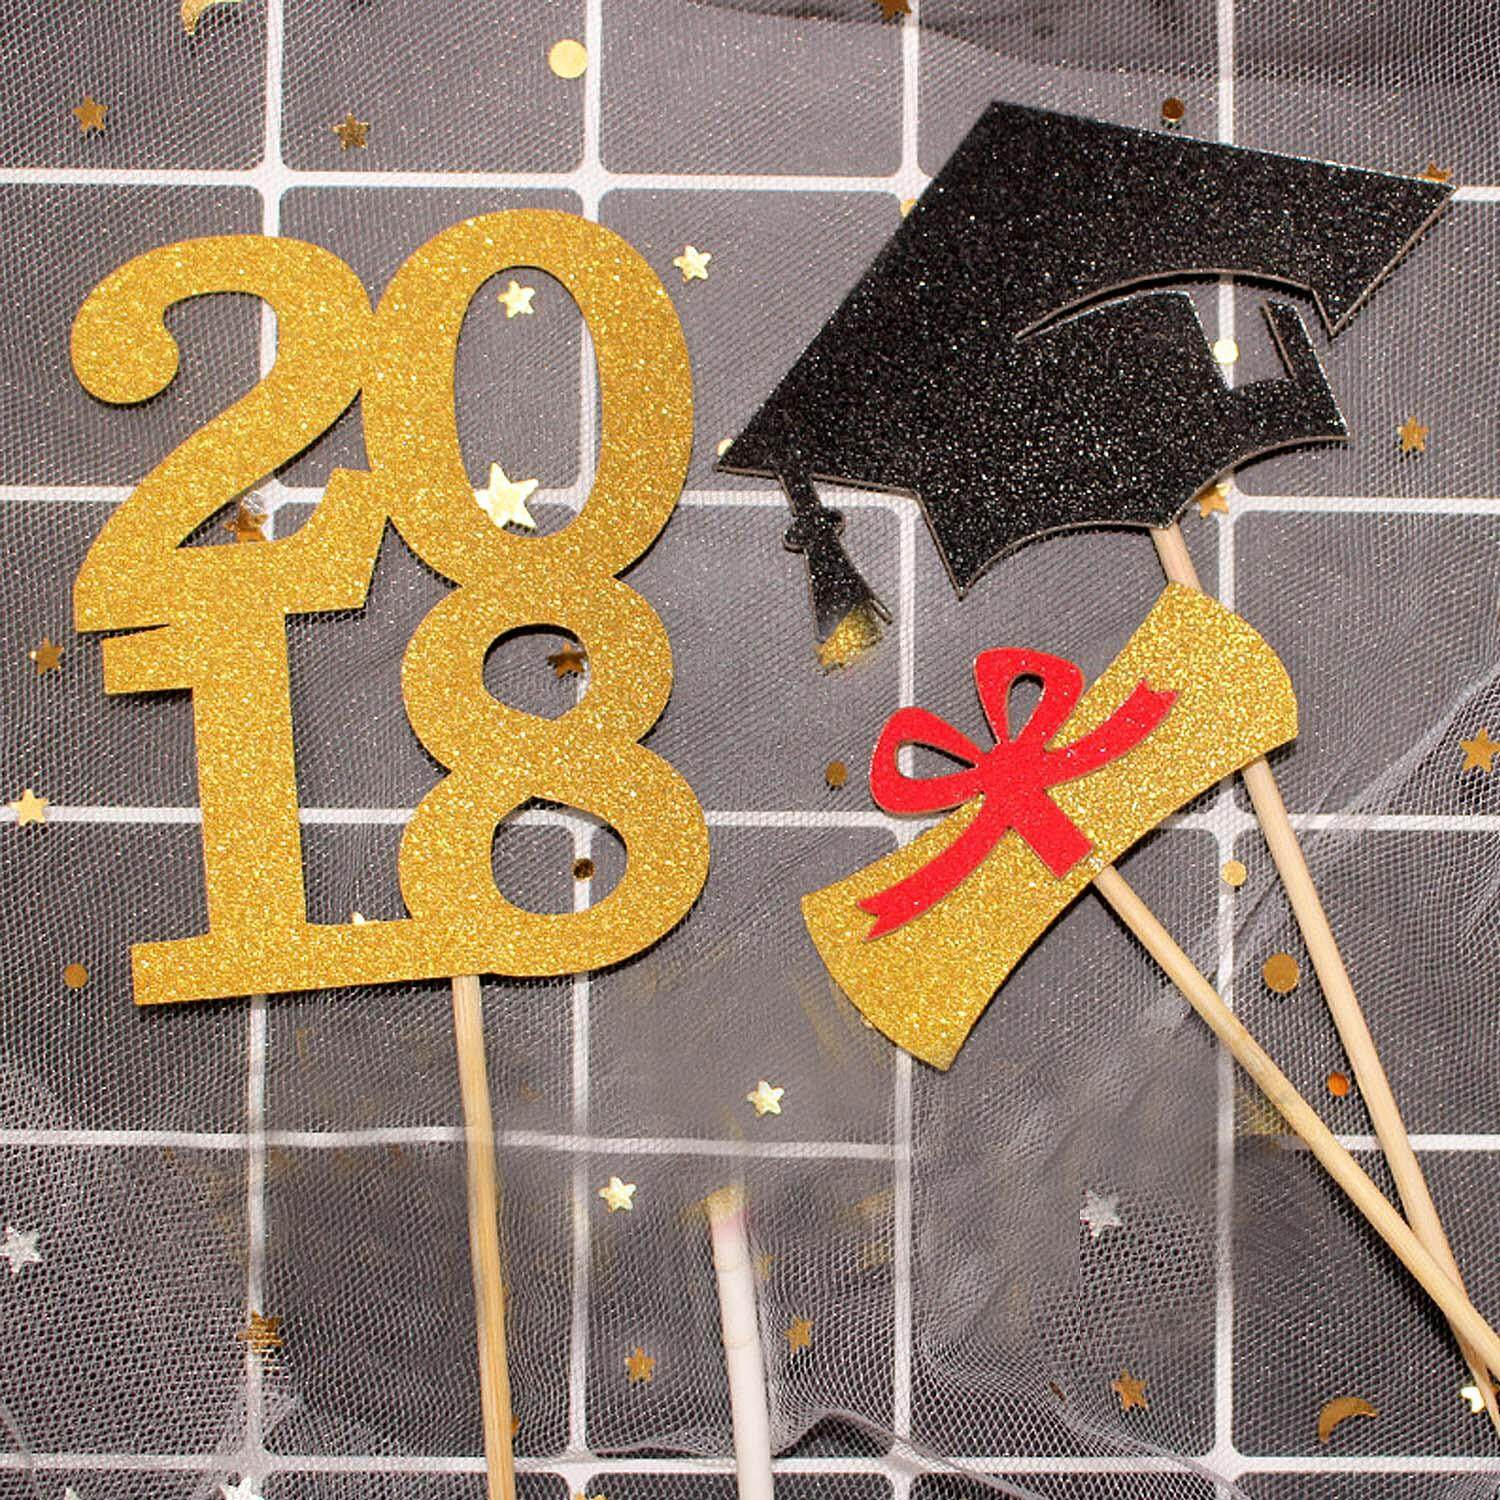 15 Pcs Gold Glitter 2018 Graduation Cupcake Toppers Sticks Cake Table Centerpieces Decoration - Intl By Stoneky.